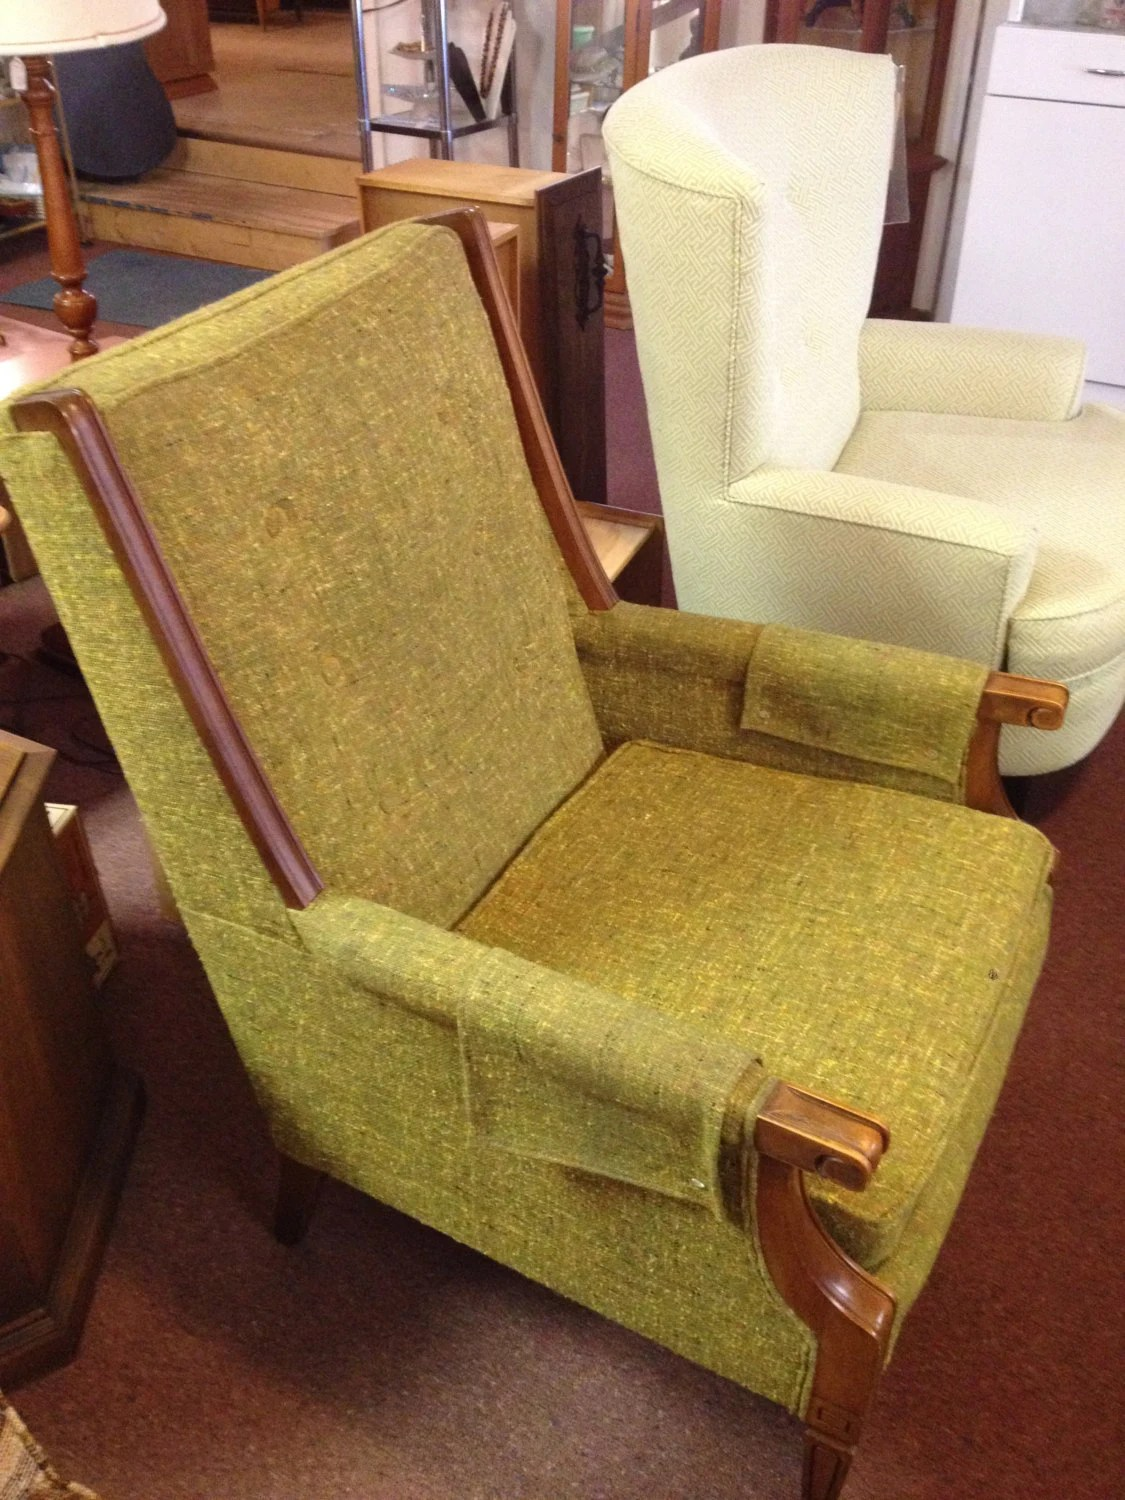 olive green accent chair best for long pc gaming sessions retro avocado tweed arm